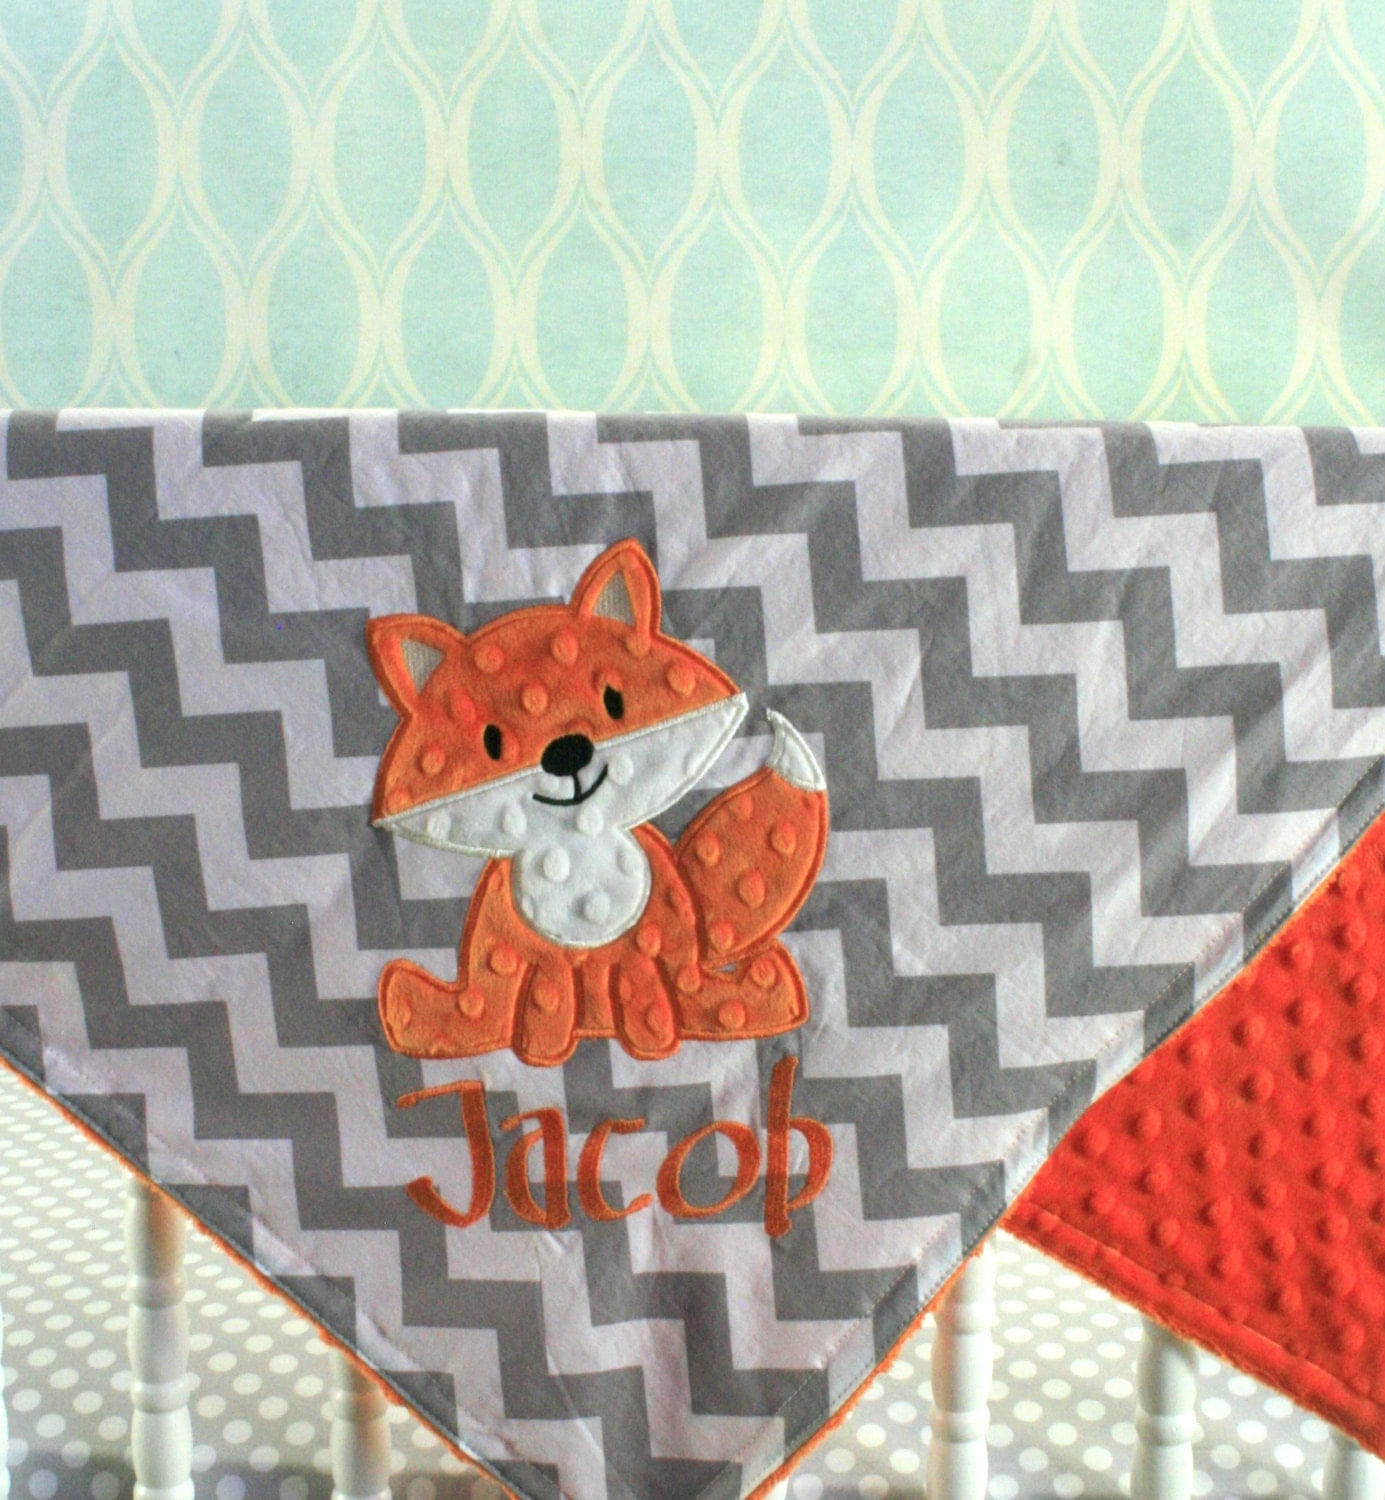 Little Leo S Nursery Fit For A King: Fox Baby Blanket Fox Applique And Name Included